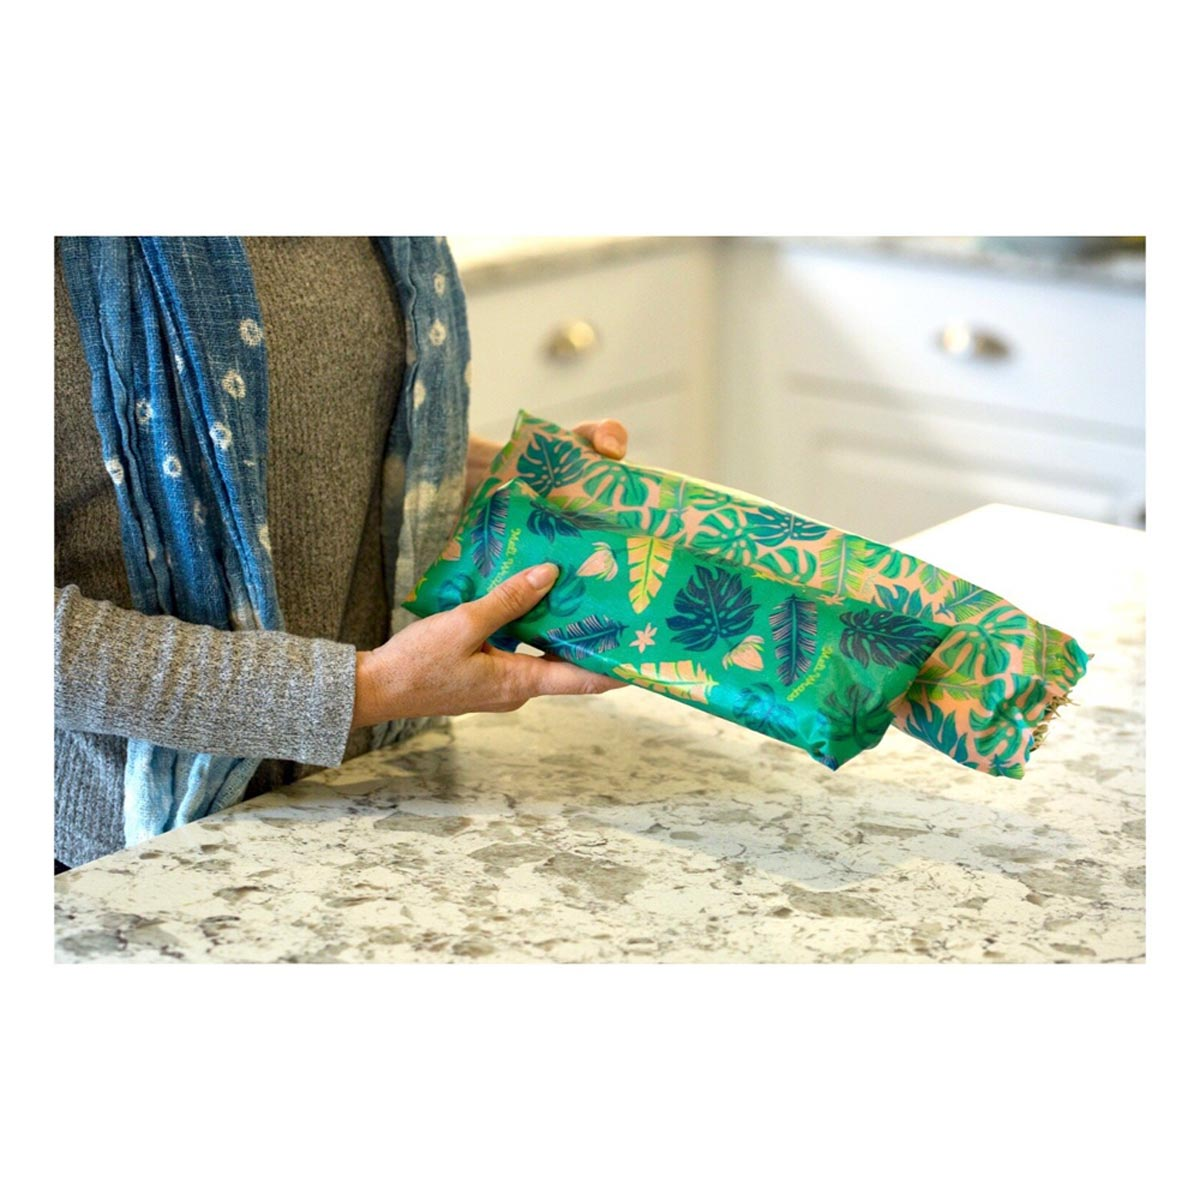 Meli Wraps 3-Pack (Sm/Med/Lrg) Reusable Beeswax Food Wrap, Assorted Prints